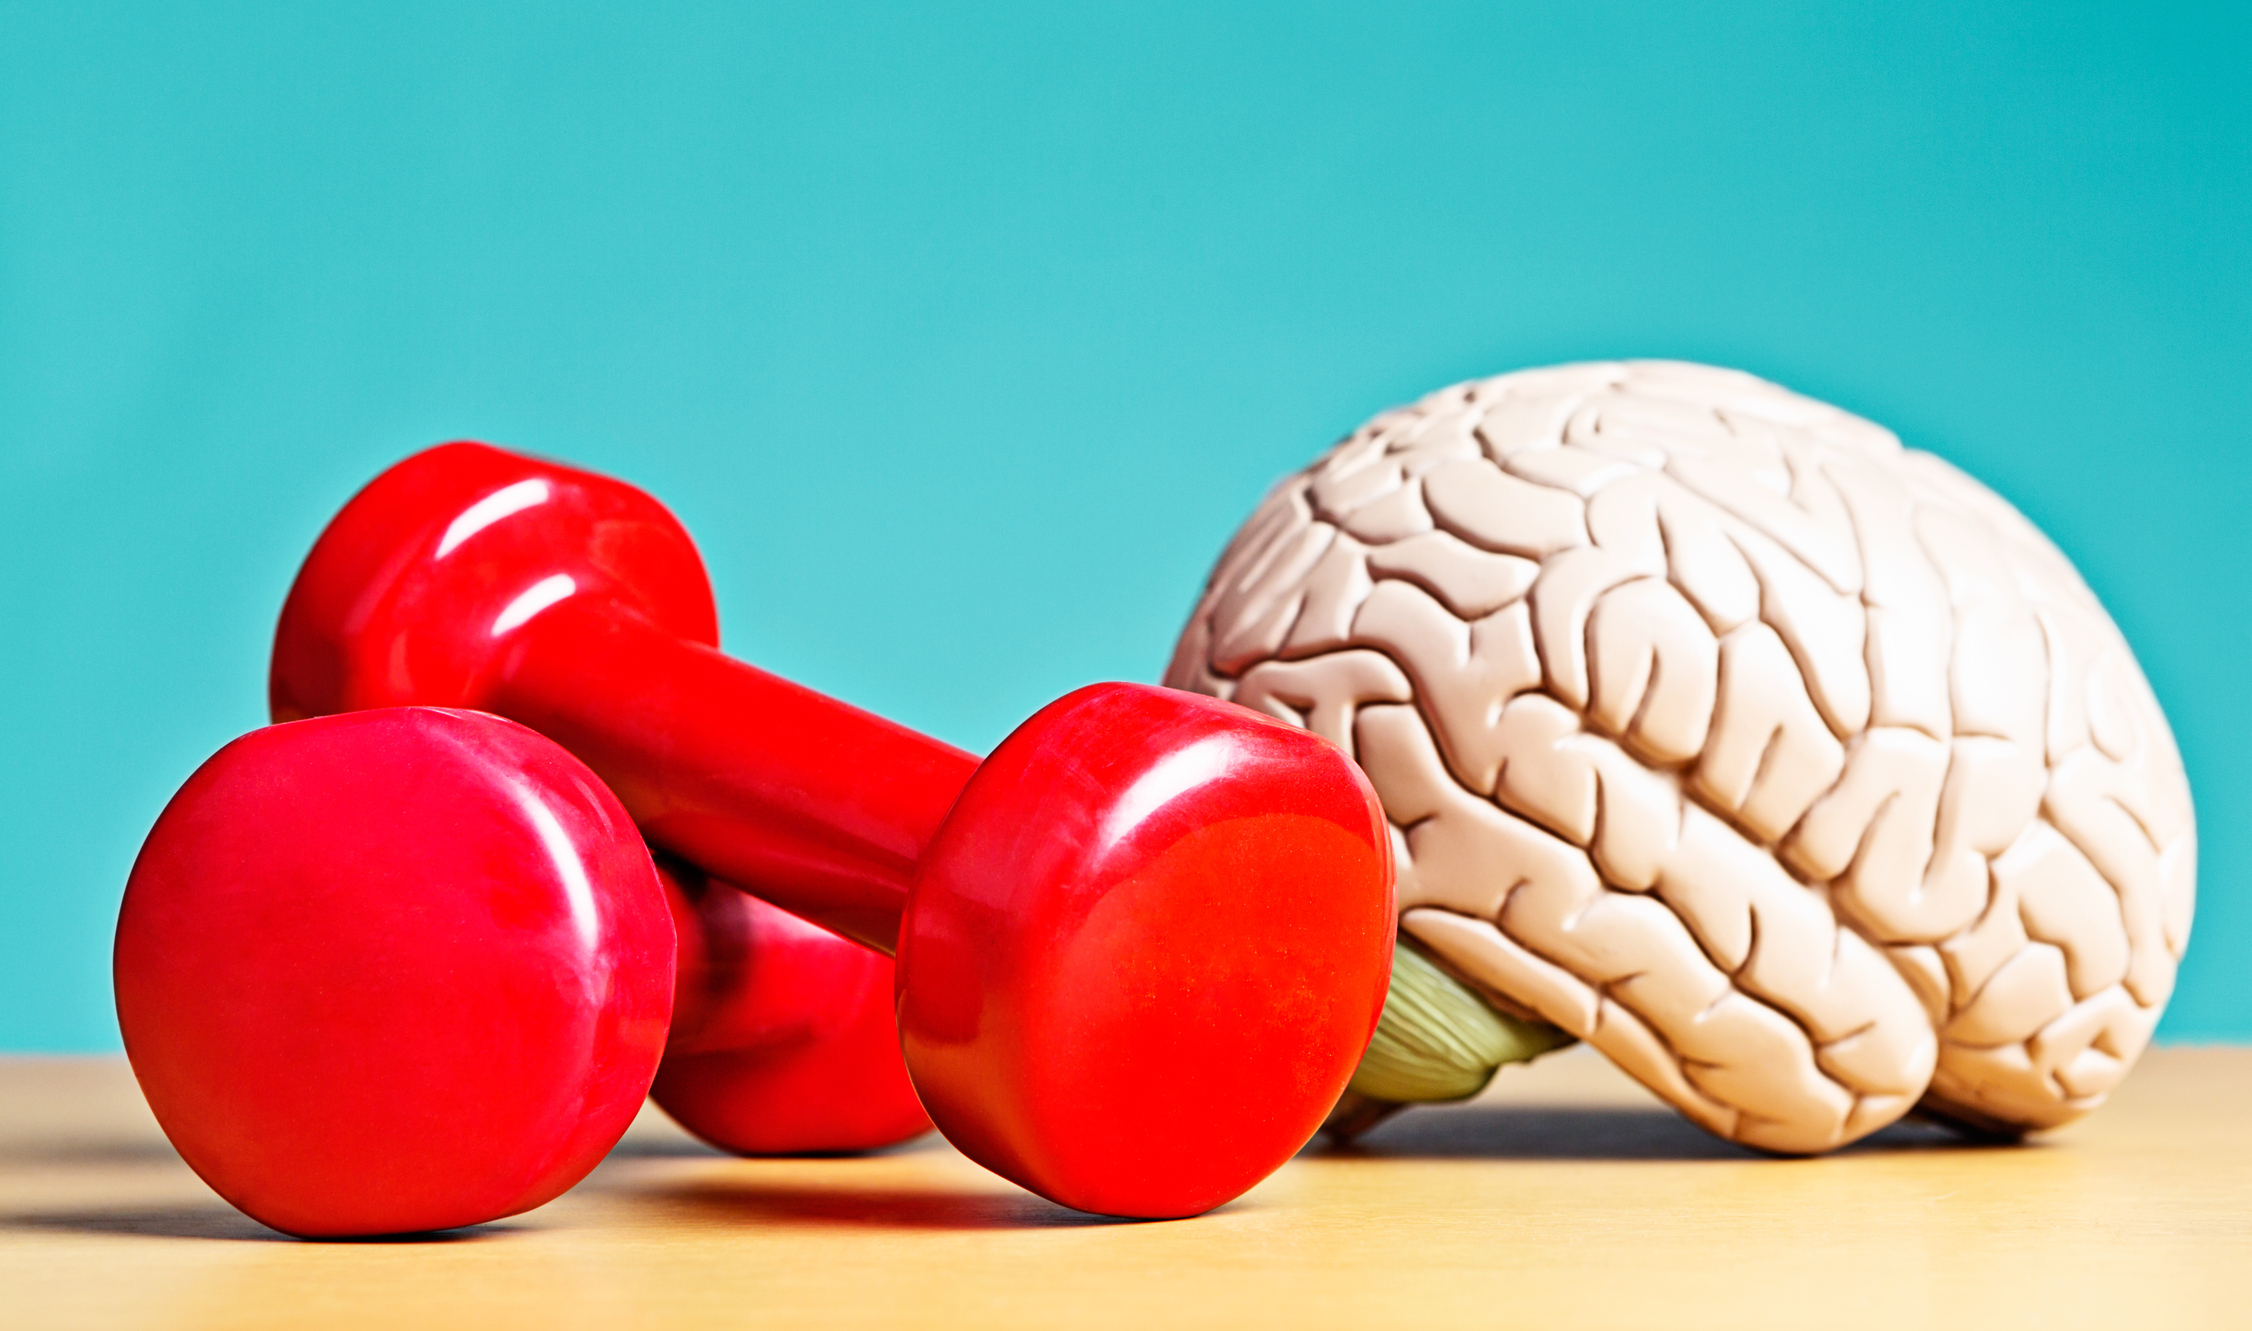 A model brain sits next to exercise weights. Metaphor for heavyweight intellects, or a reminder that exercise helps your circulation, so as well as keeping your body fit, it also keeps you mentally active. Double bonus!